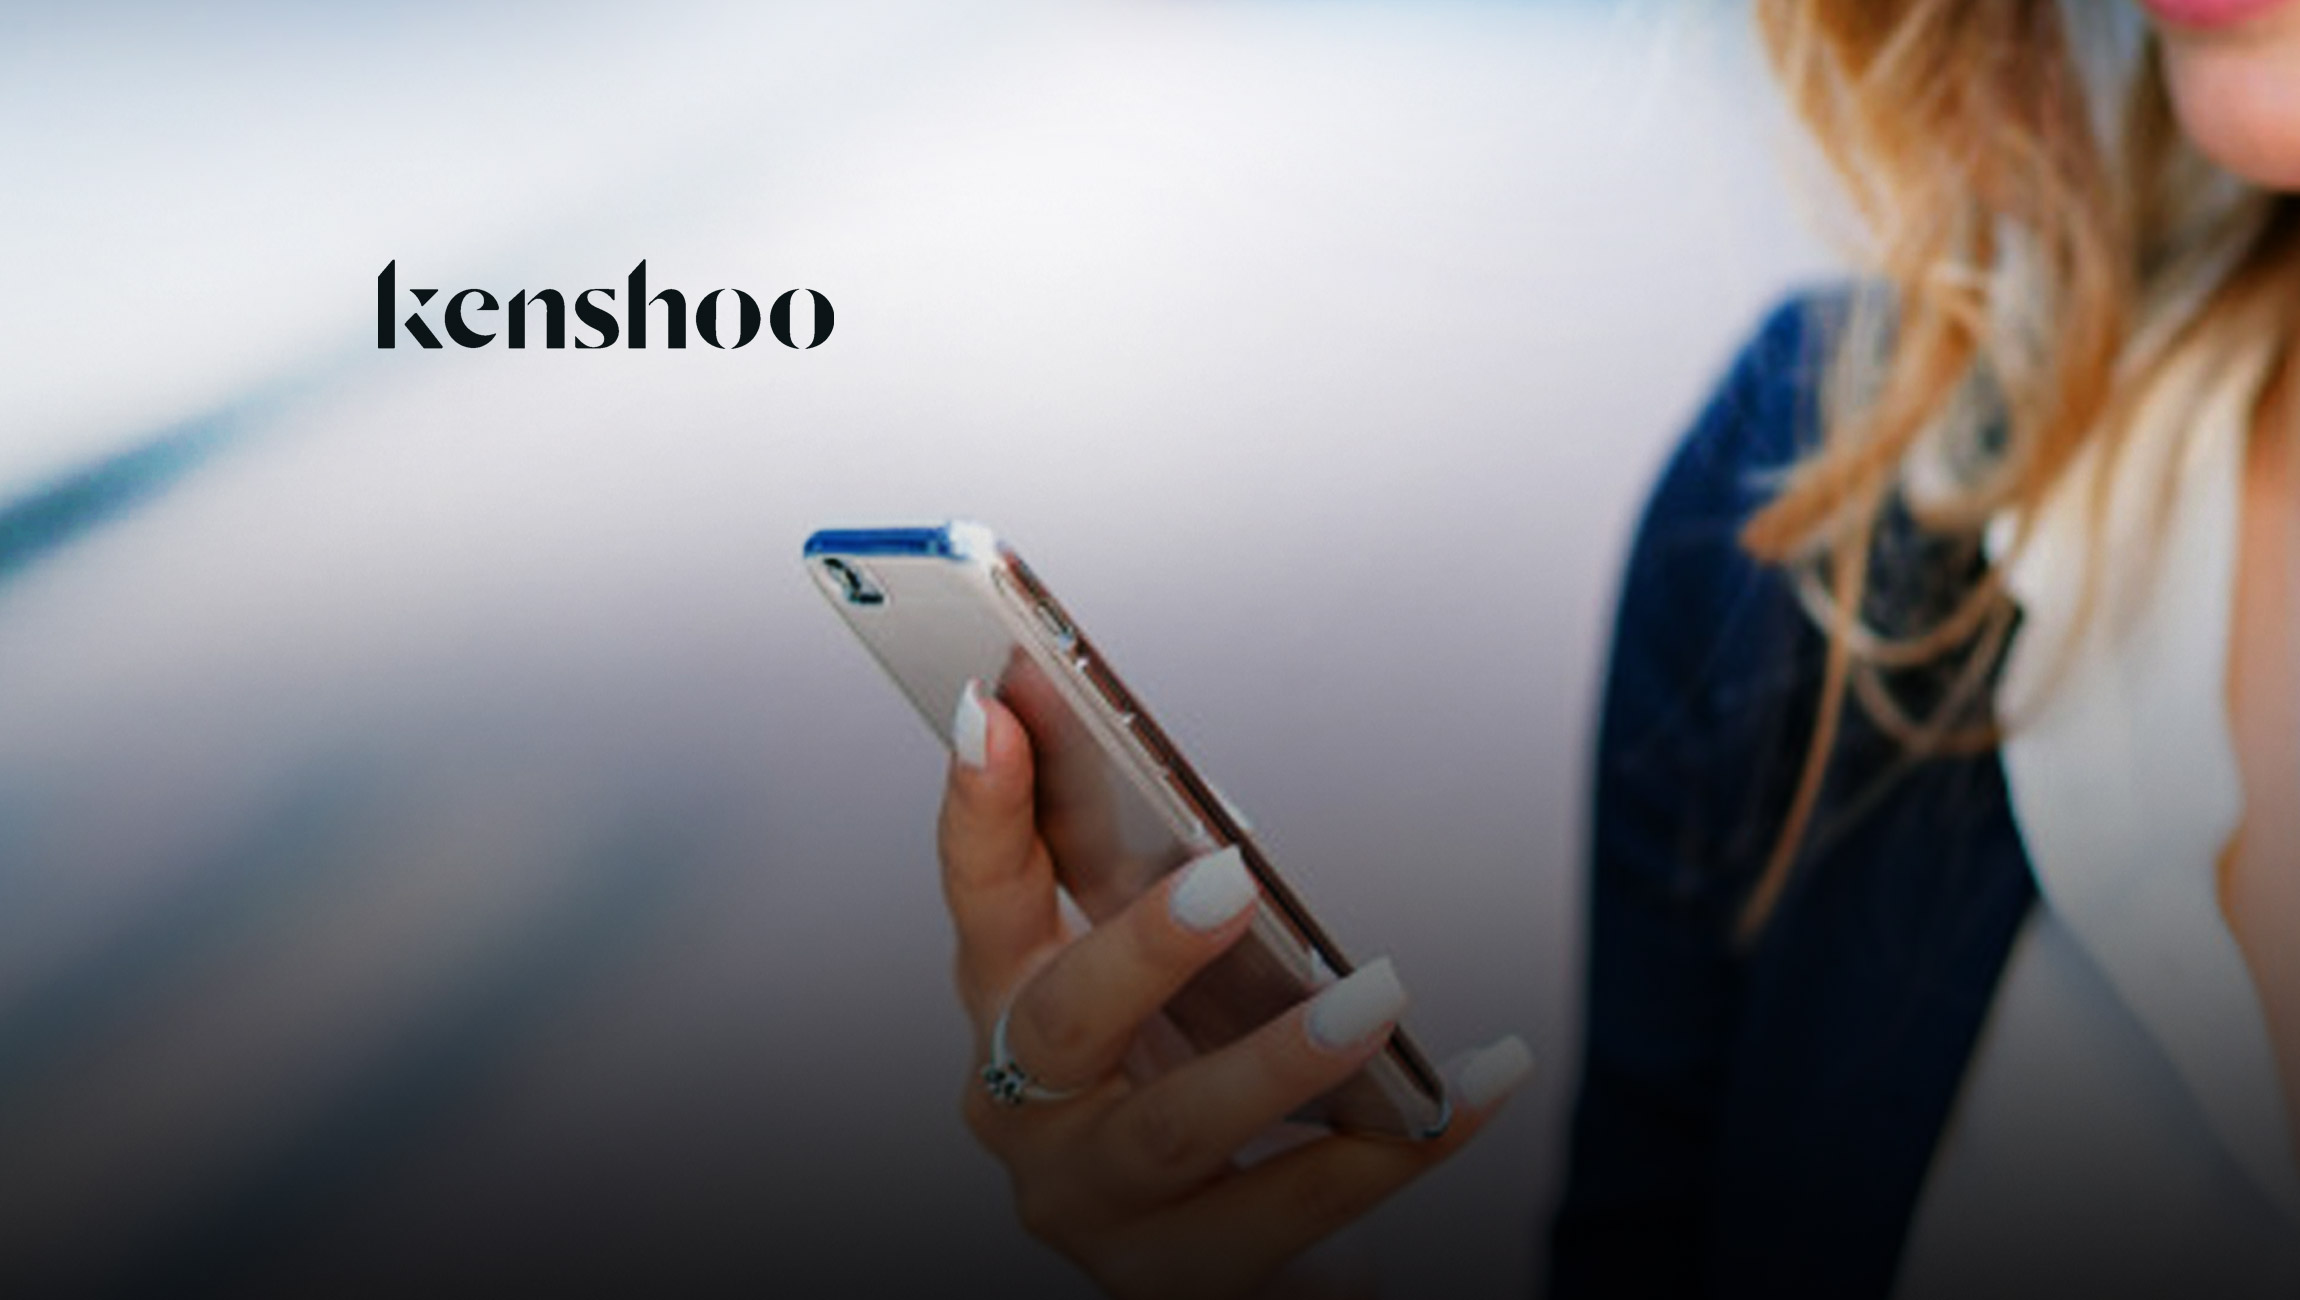 Kenshoo Supports Instacart Advertising with Data-Driven Insights to Optimize the Endless Aisle